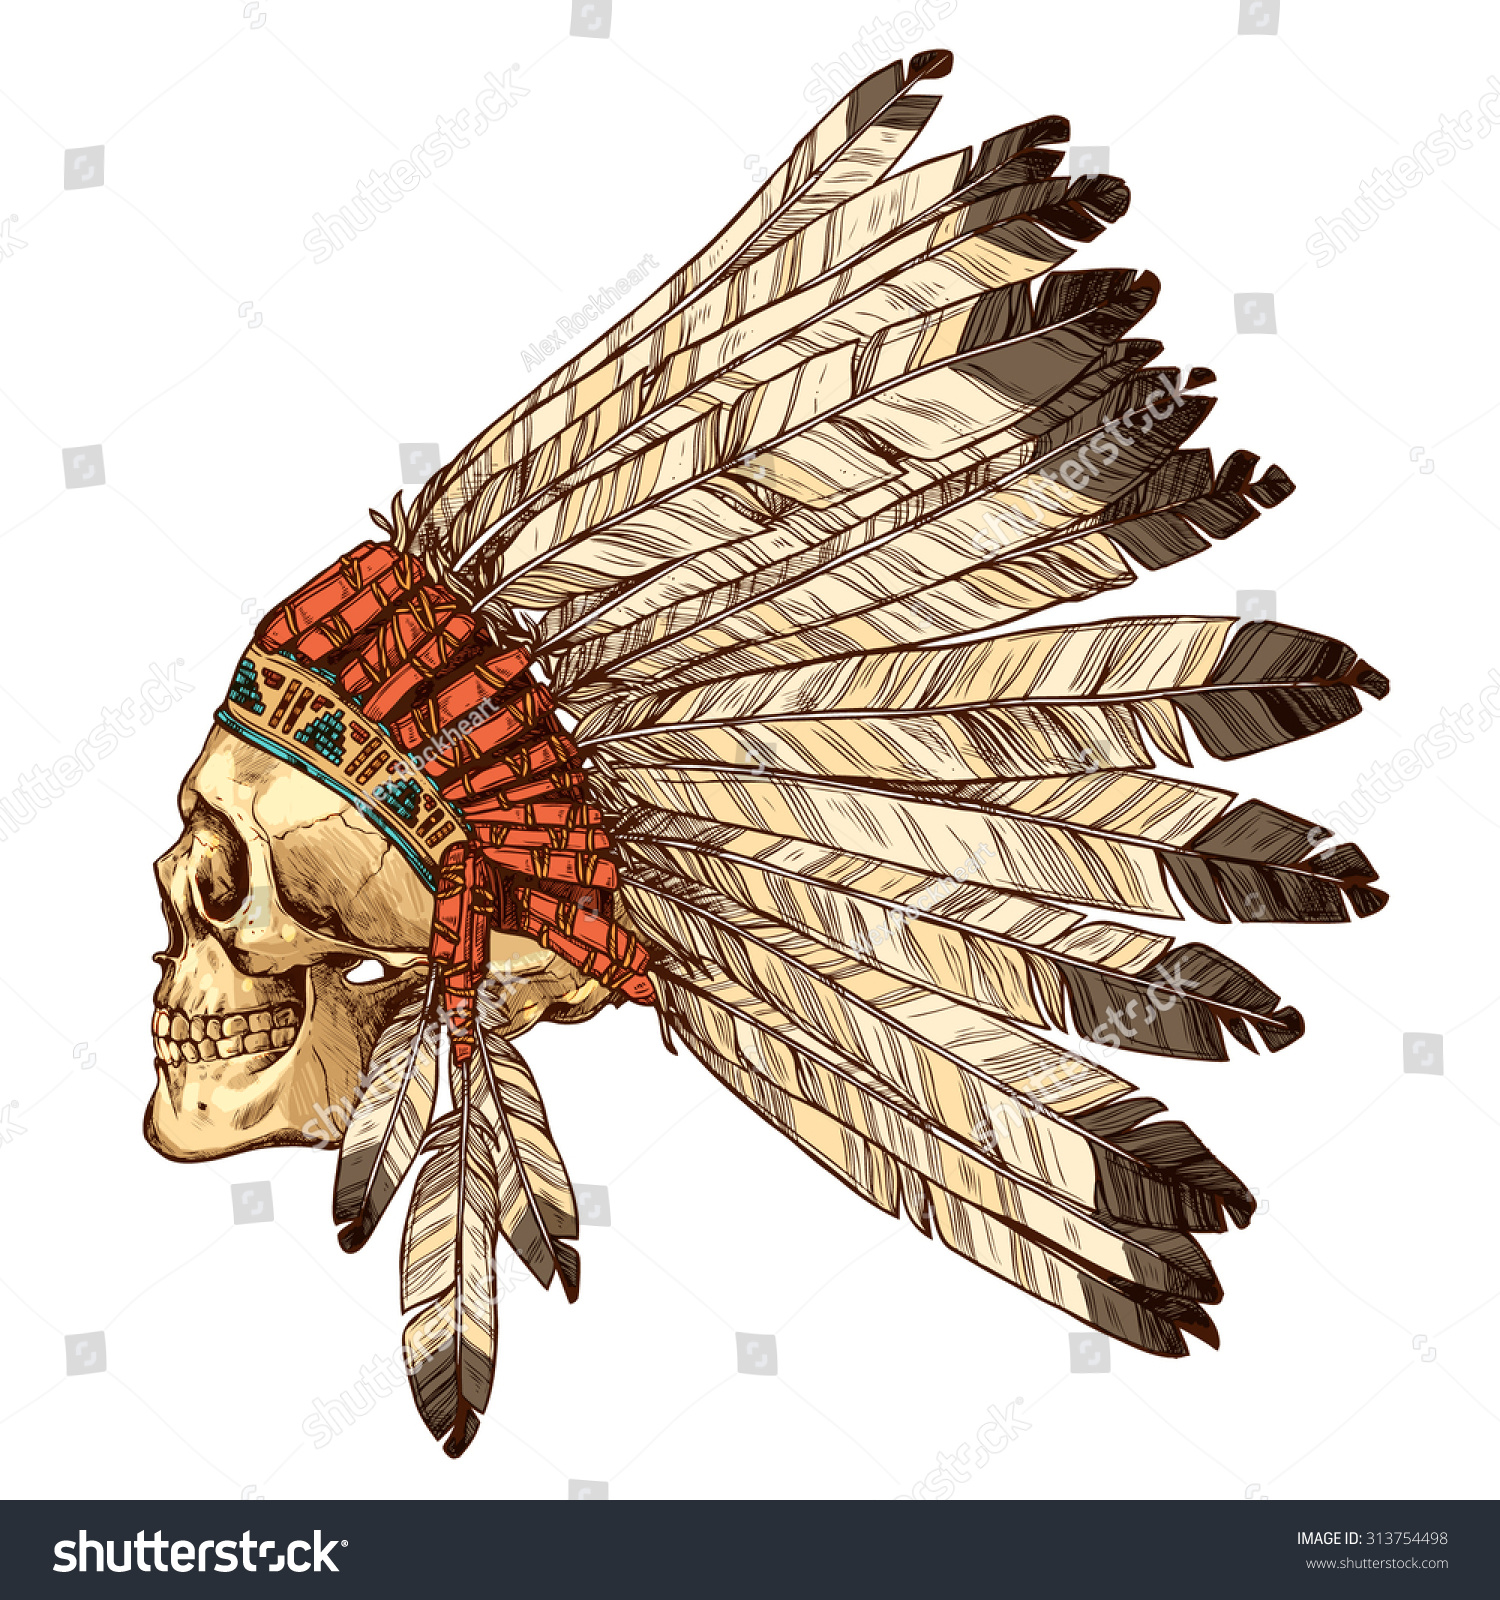 dd32fba3da006 Hand Drawn Native American Indian Headdress With Human Skull In Profile.  Vector Color Illustration Of Indian Tribal Chief Feather Hat And Skull Side  View